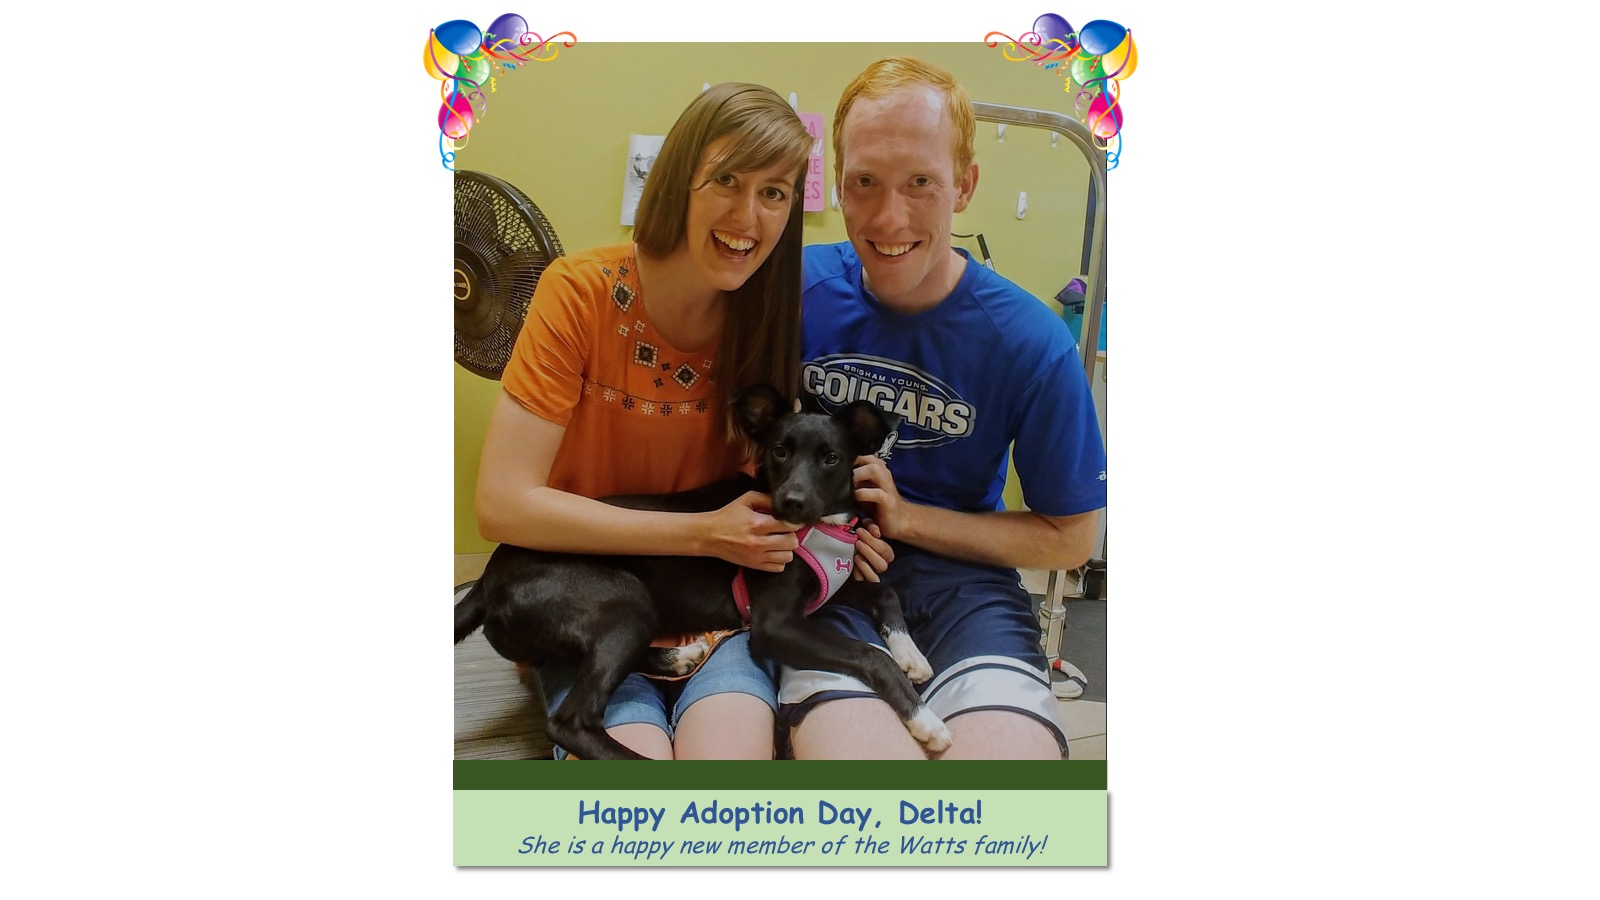 Delta_Adoption_Photo_2018.jpg